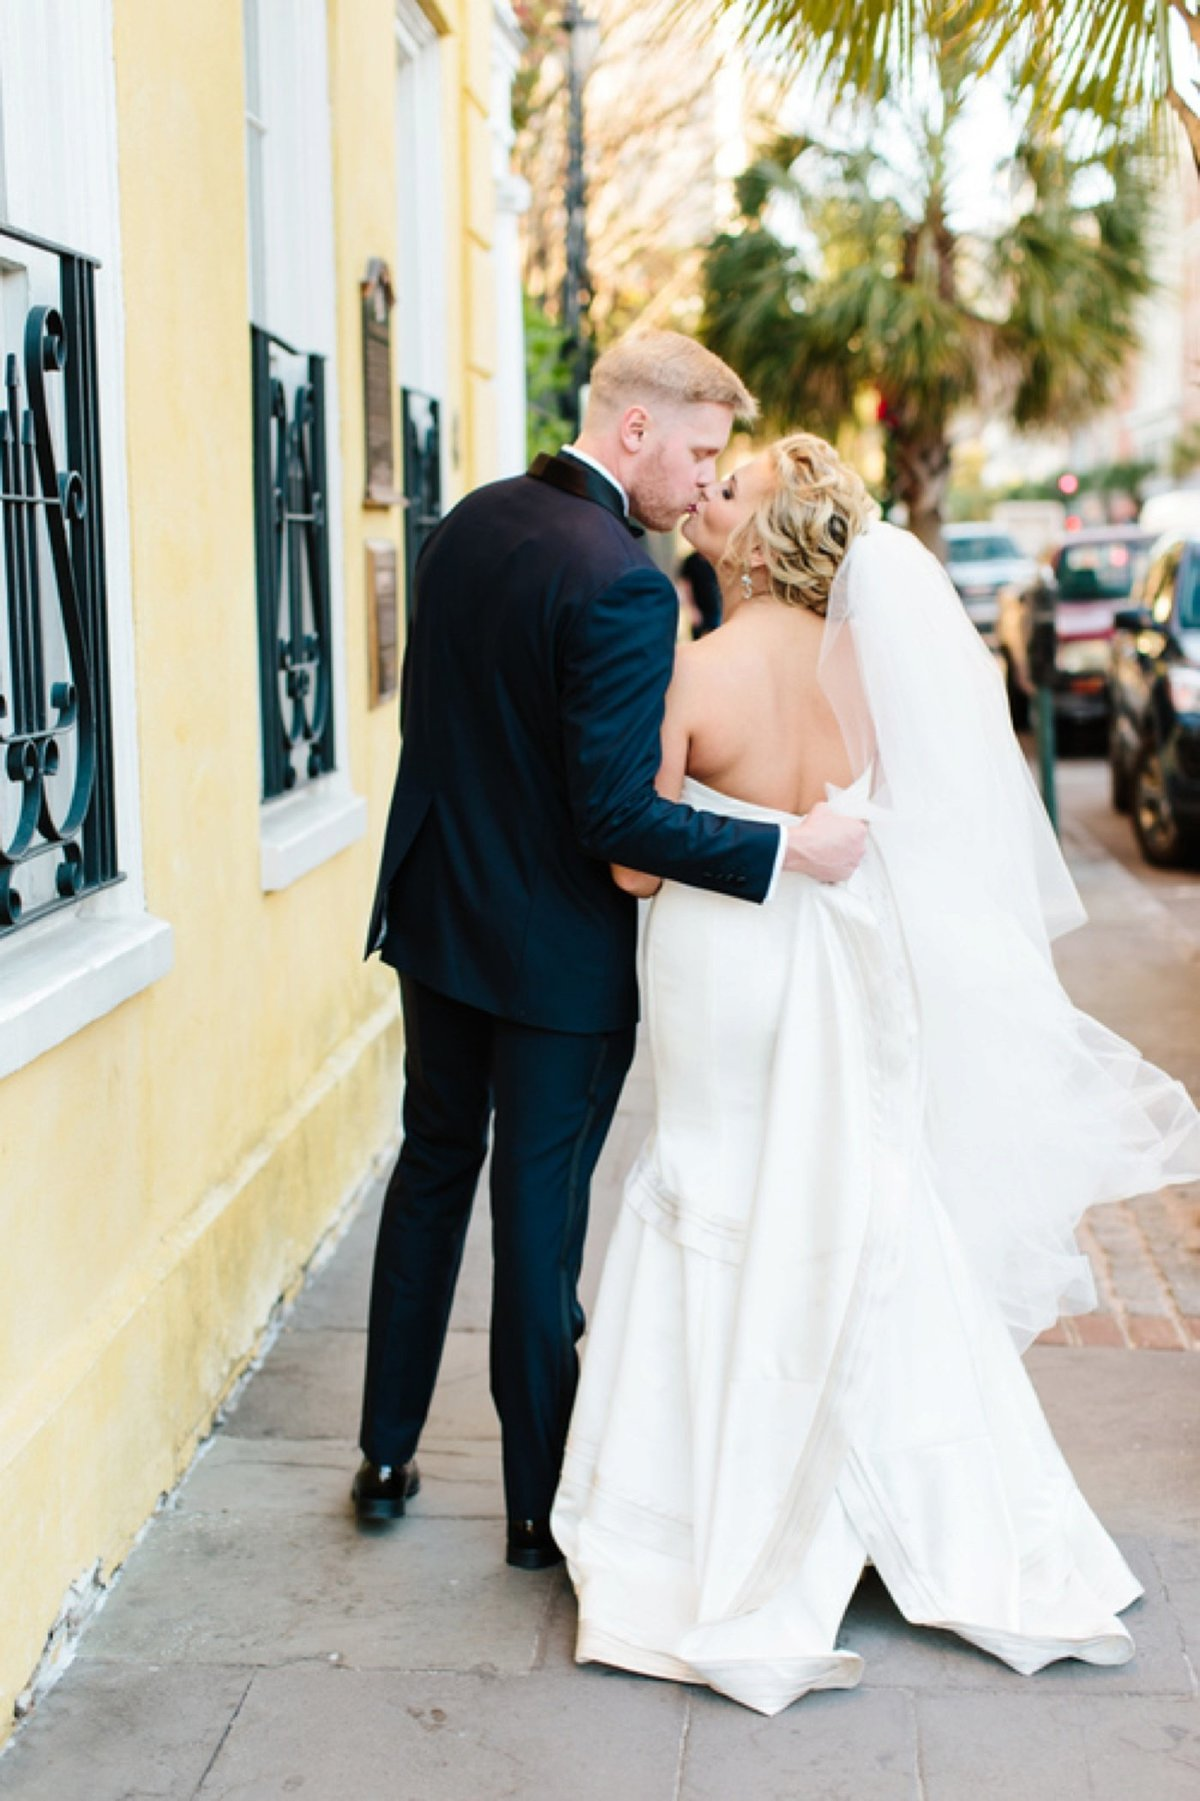 Georgia South Carolina Destination Wedding Photographer_0058